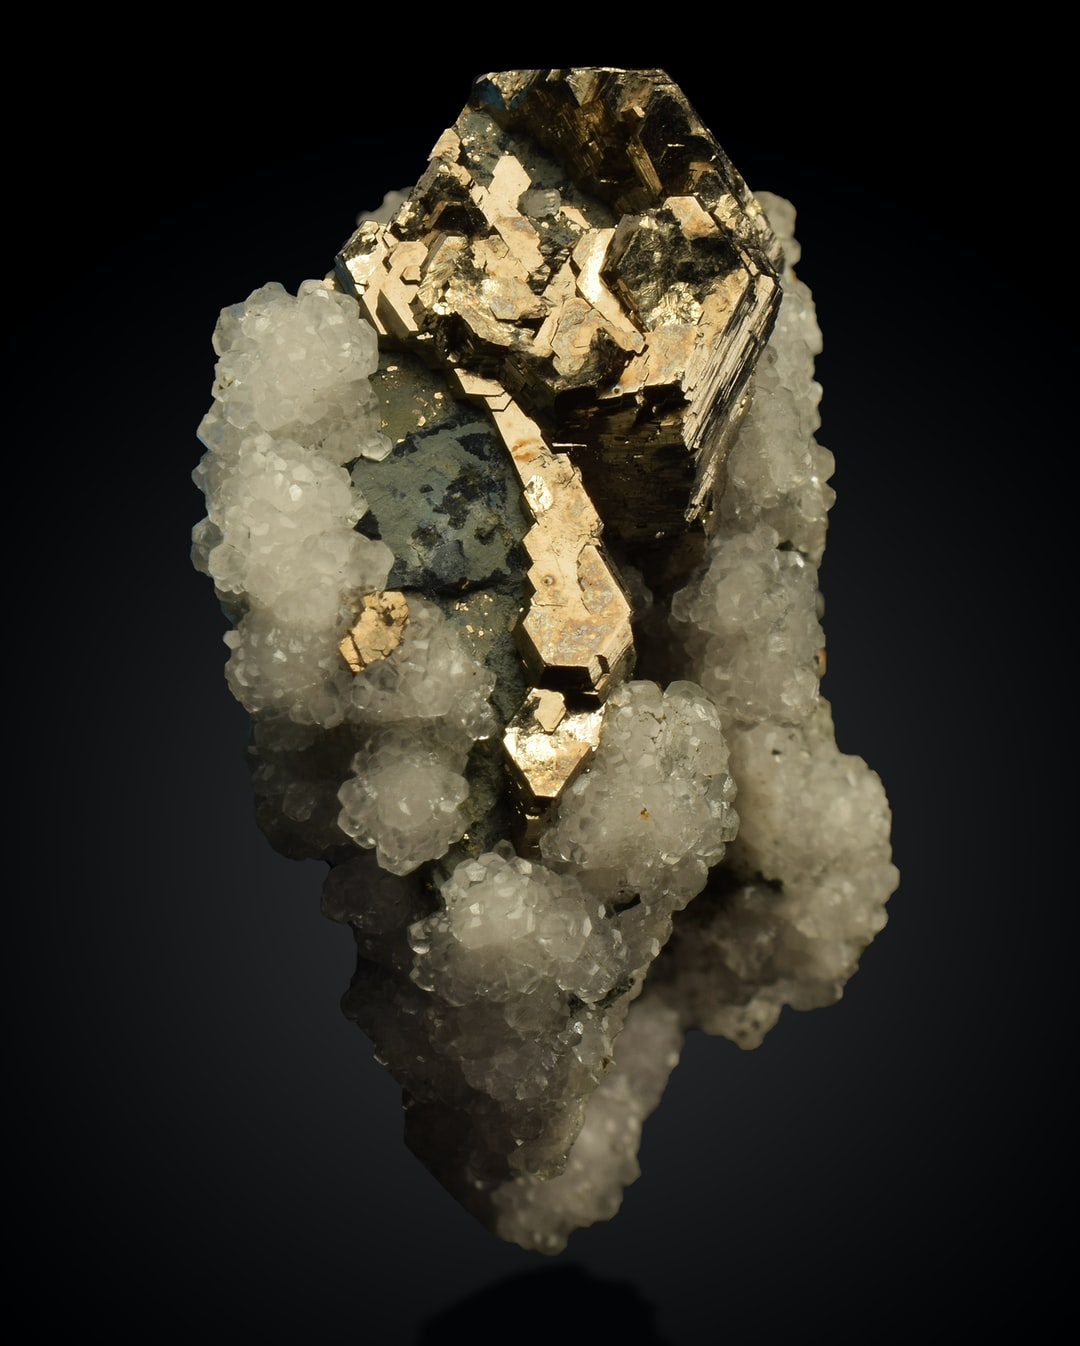 Pyrrhotite is an iron sulfide mineral related to iron pyrite, which is one of the minerals known as Fool's Gold. Pyrrhotite, although not one of the Fool's Gold minerals, is sometimes called magnetic pyrite as it is weakly magnetic. It is most valued as a collectors mineral.